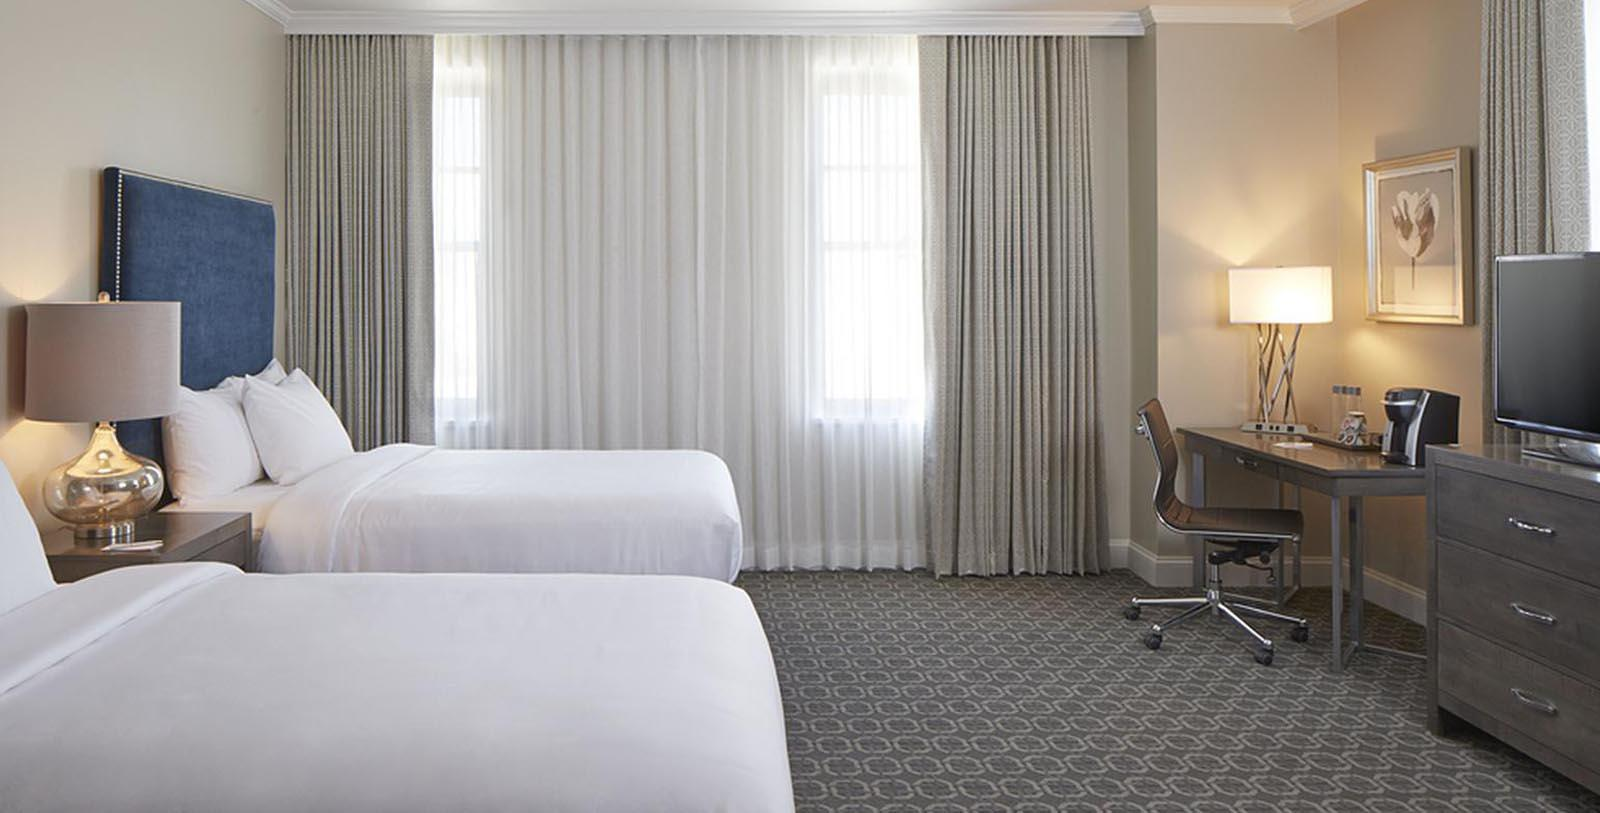 Image of Guestroom at The Redmont Hotel Birmingham, Curio Collection by Hilton, 1925, Member of Historic Hotels of America, in Birmingham, Alabama, Explore